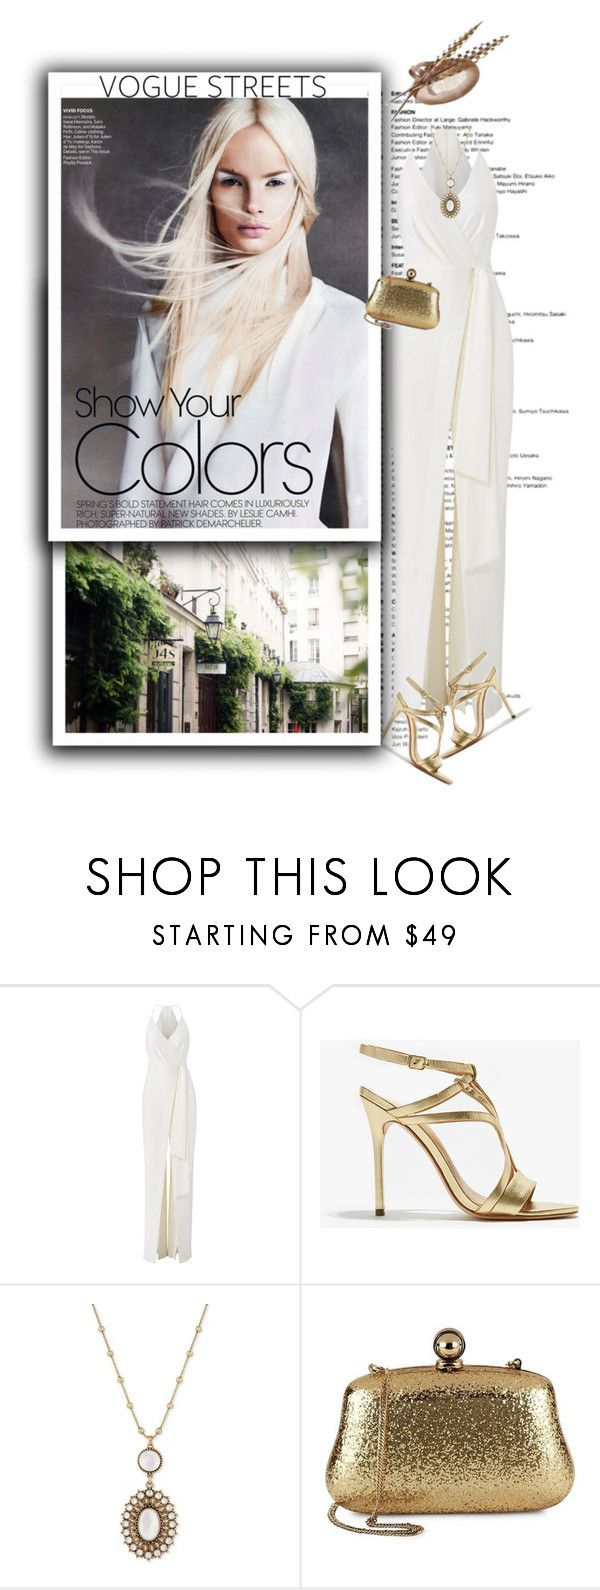 """""""Vogue Streets"""" by terrelynthomas ❤ liked on Polyvore featuring Halston, Halston Heritage, Lucky Brand, jumpsuit, offwhite, goldaccessories and halston"""